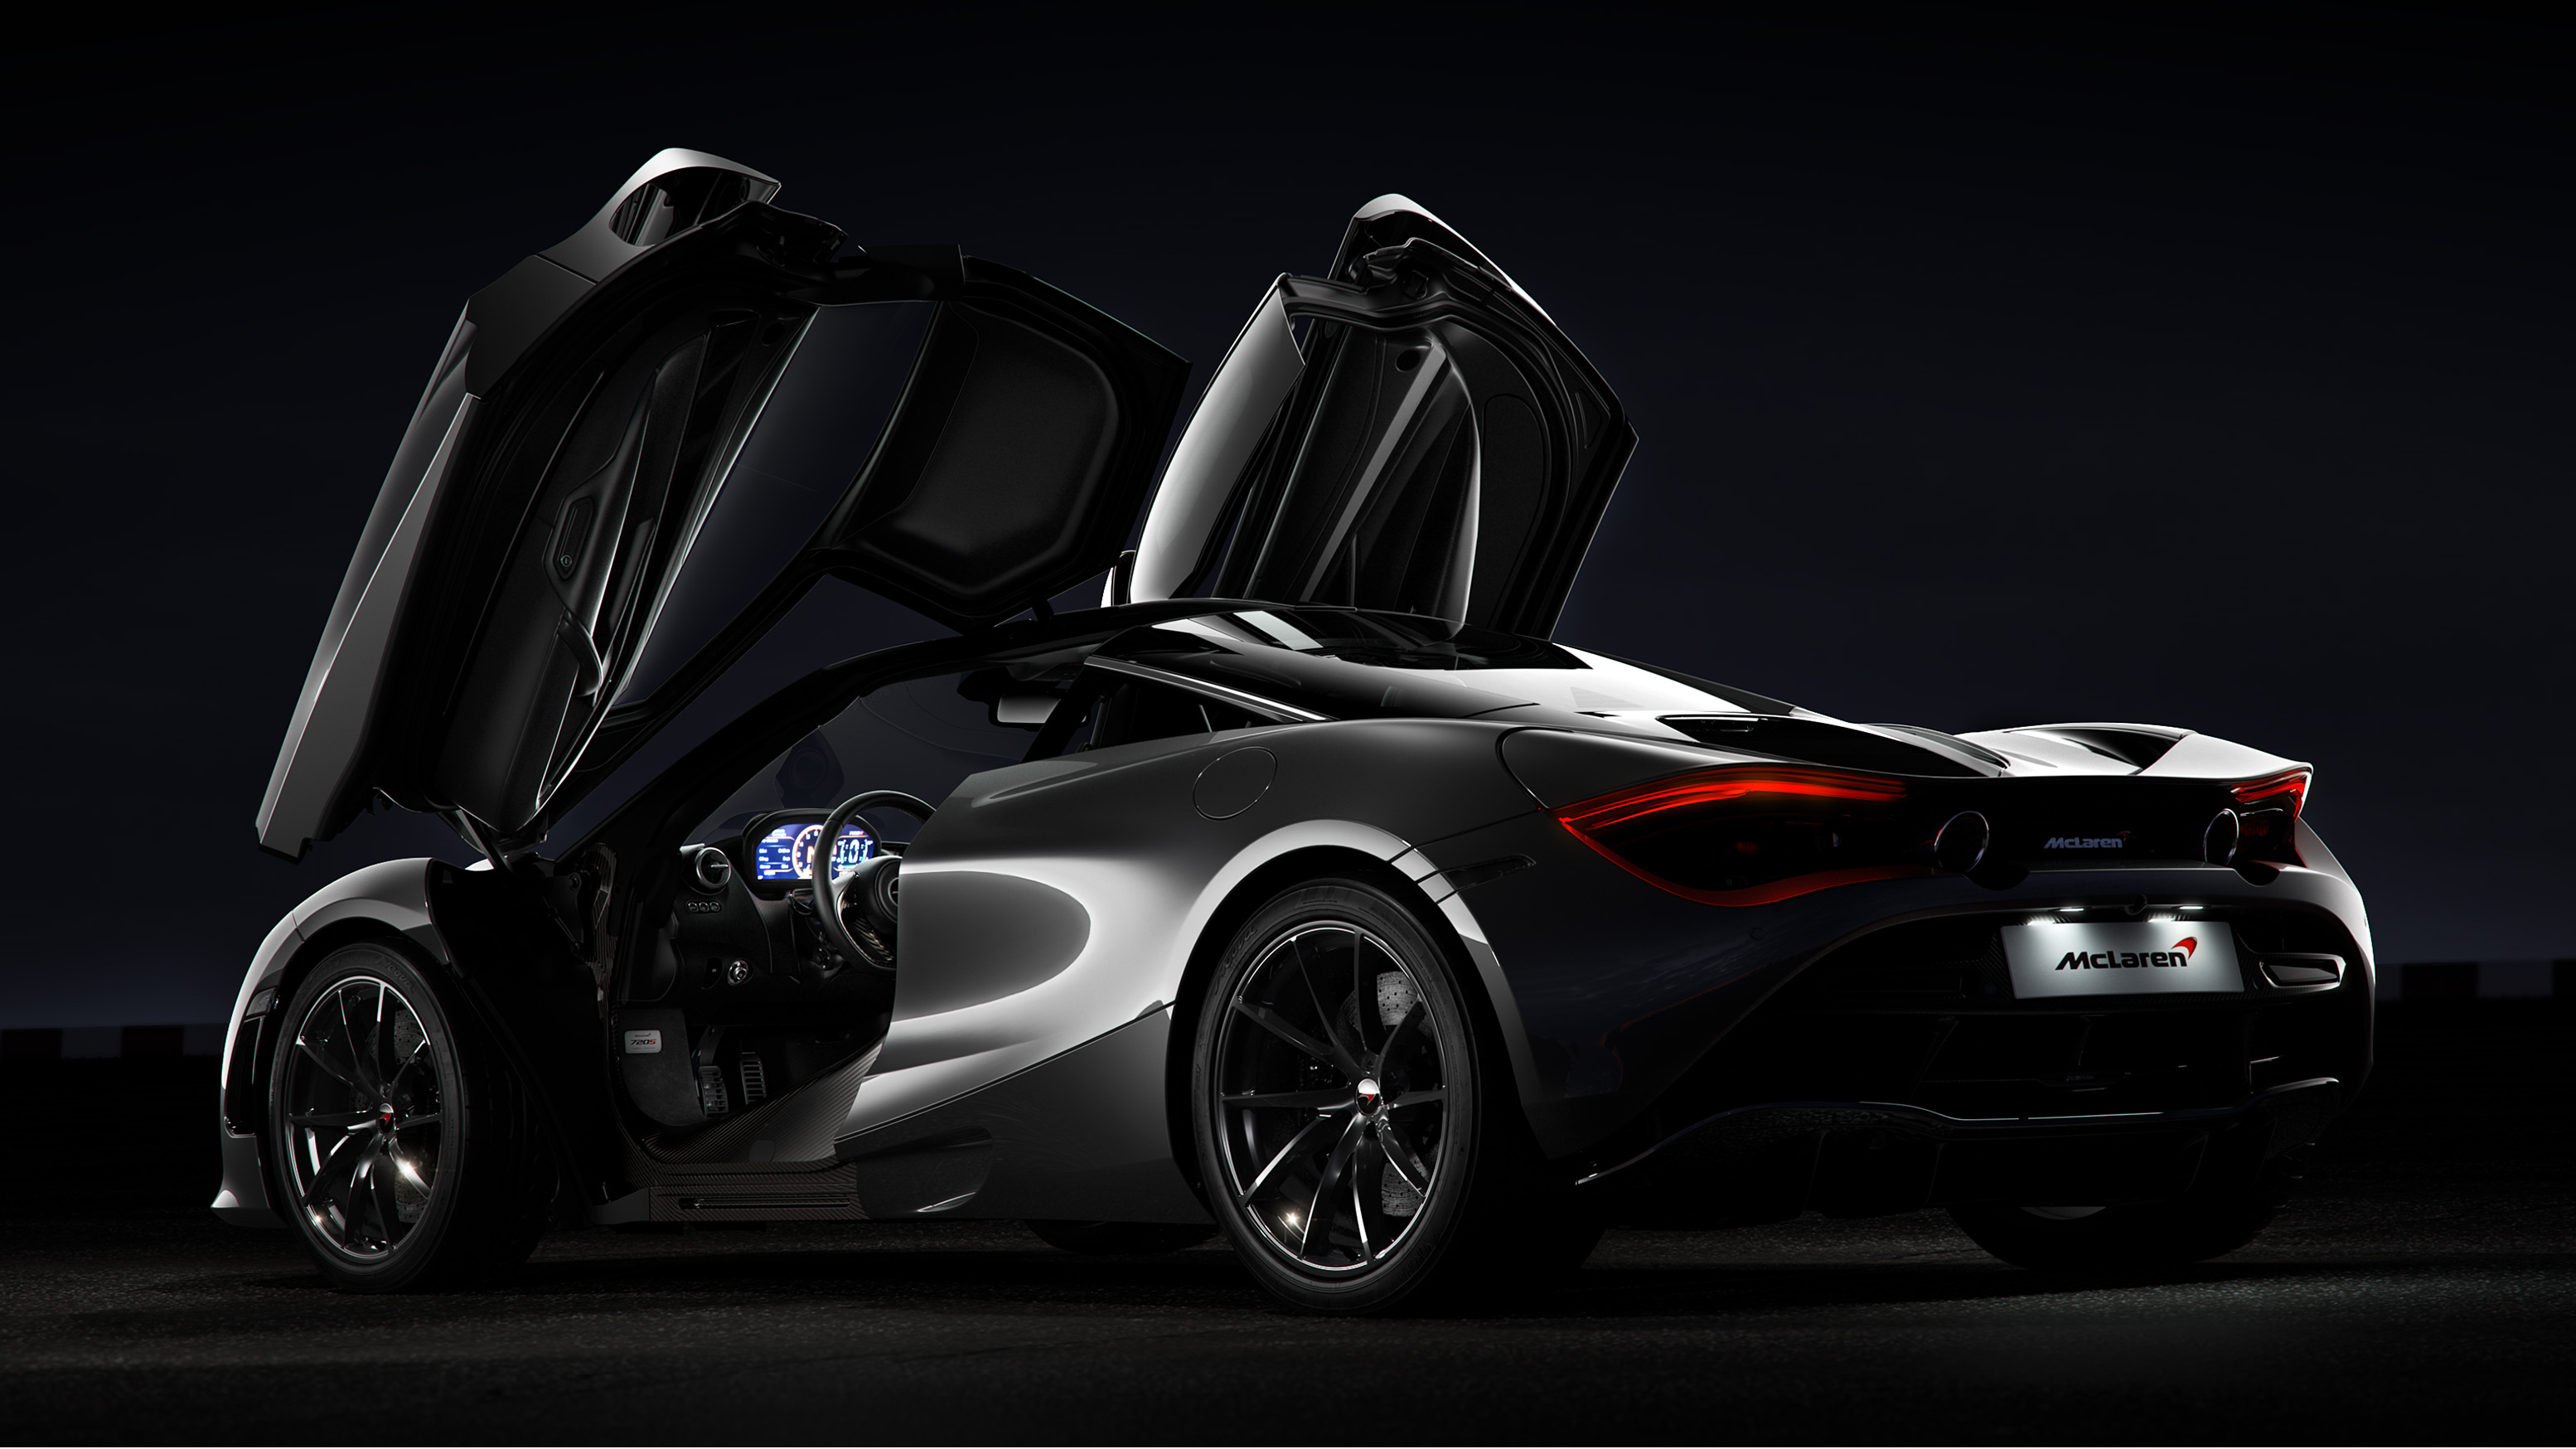 Mclaren 720s doors up hd cars 4k wallpapers images - Wallpaper hd 4k car ...